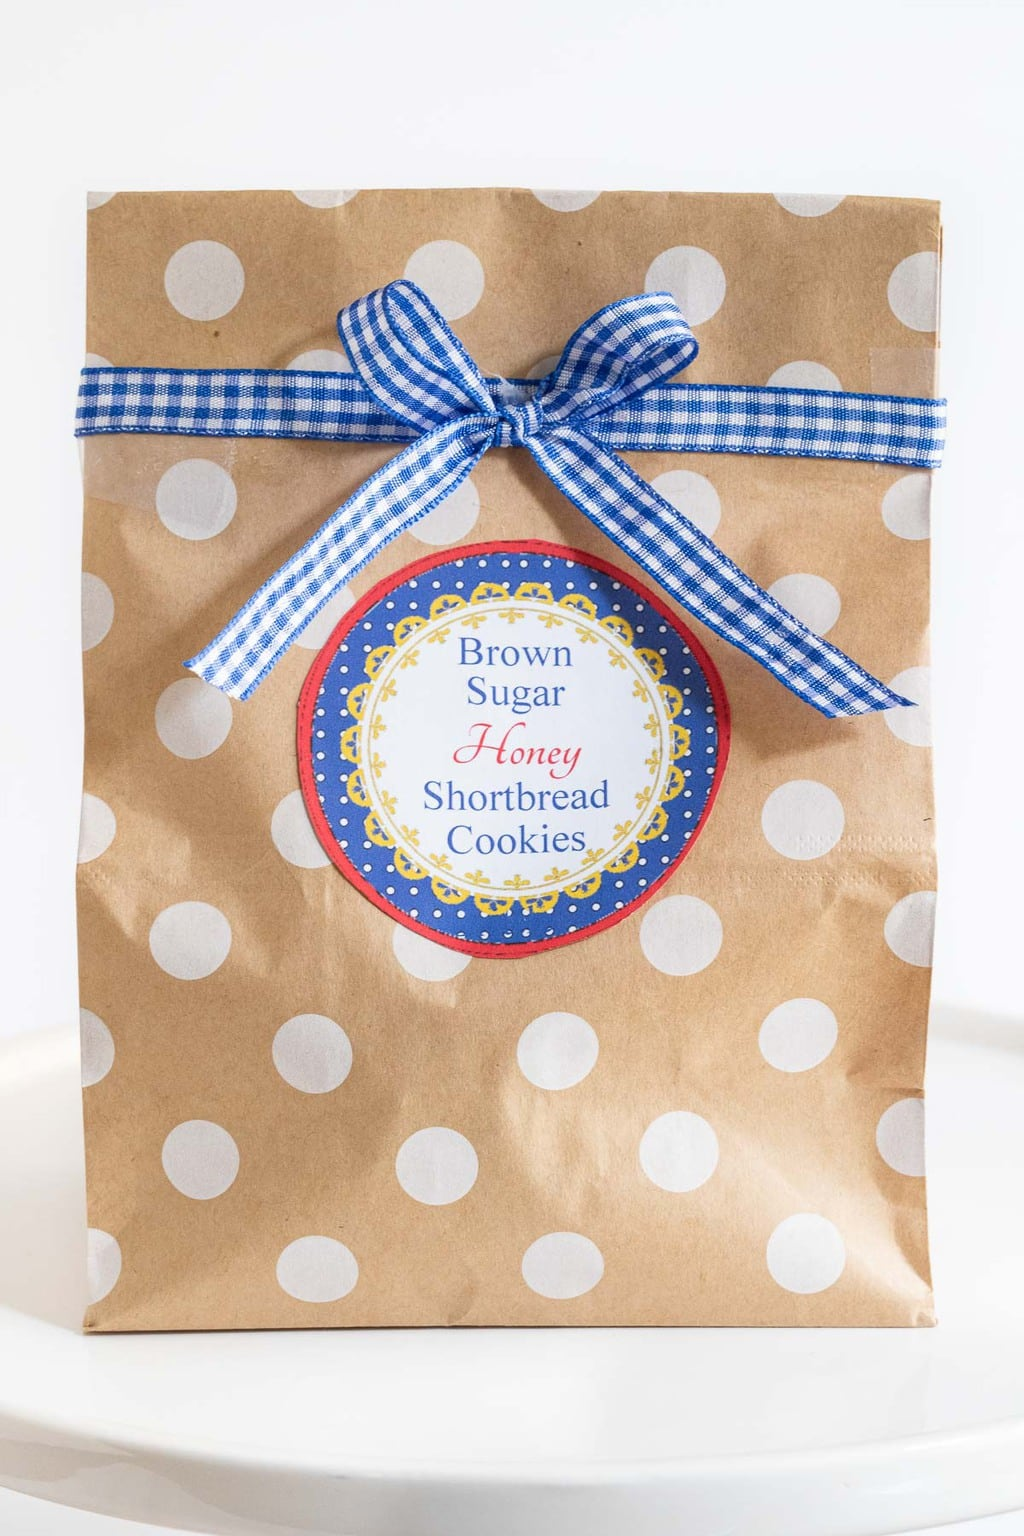 Closeup vertical photo of a polka dot paper gift bag decorated with a Brown Sugar Honey Shortbread Cookies label and blue and white checkered ribbon in a bow.